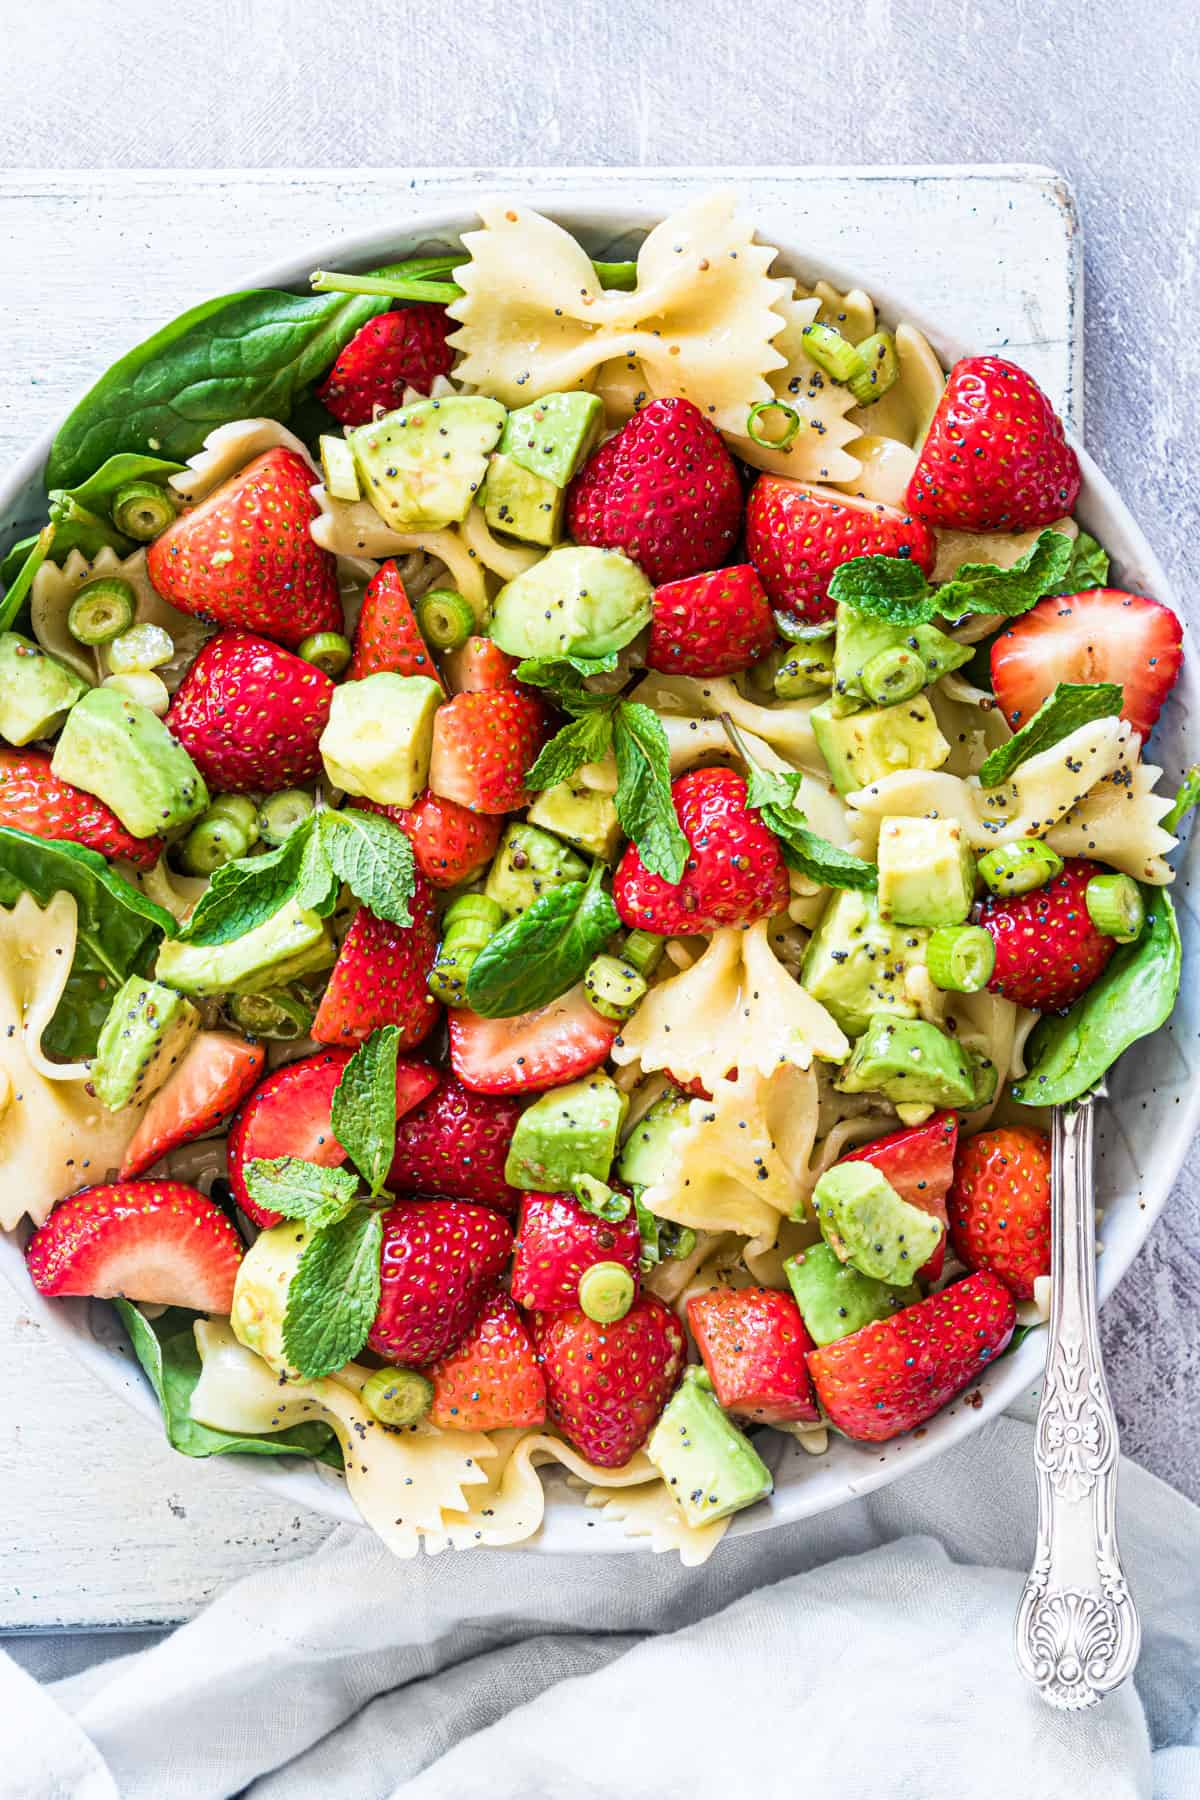 top down view of the completed strawberry avocado salad recipe